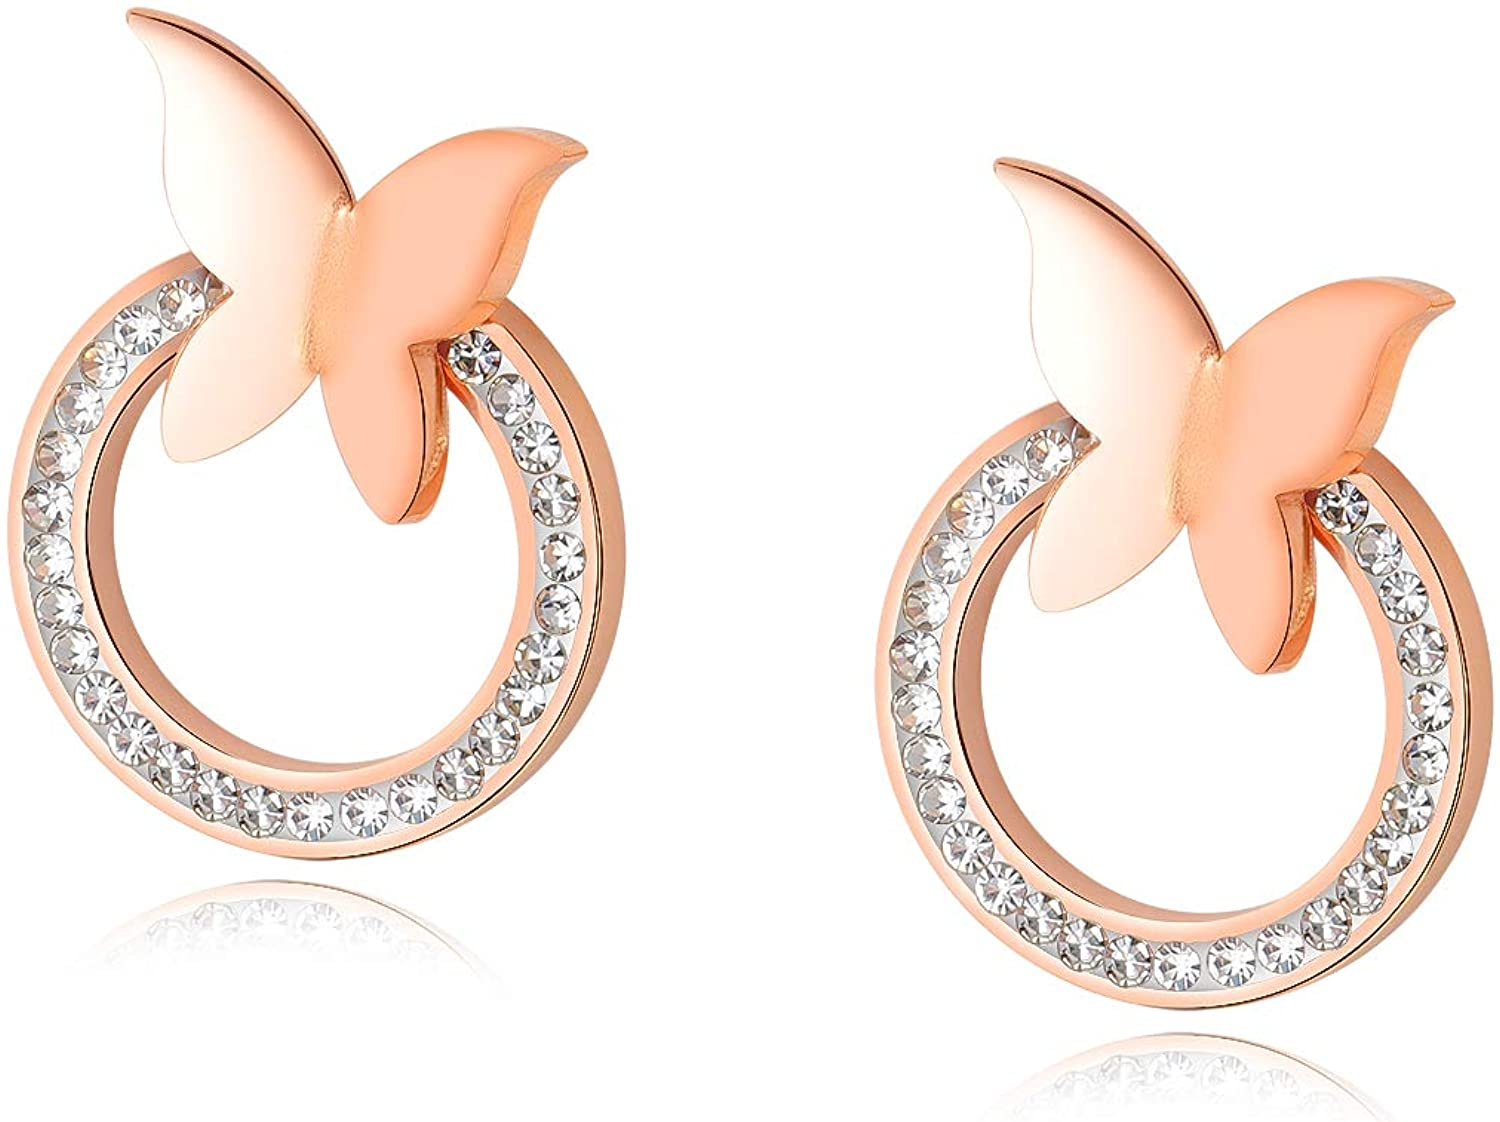 FANCIME Round Circle Stud Earrings With Butterfly Rose Gold Plated Stainless Steel Cubic Zirconia CZ Hypoallergenic Fashion Chrismas Jewelry Gift for Women Girls Mom,18.5mm